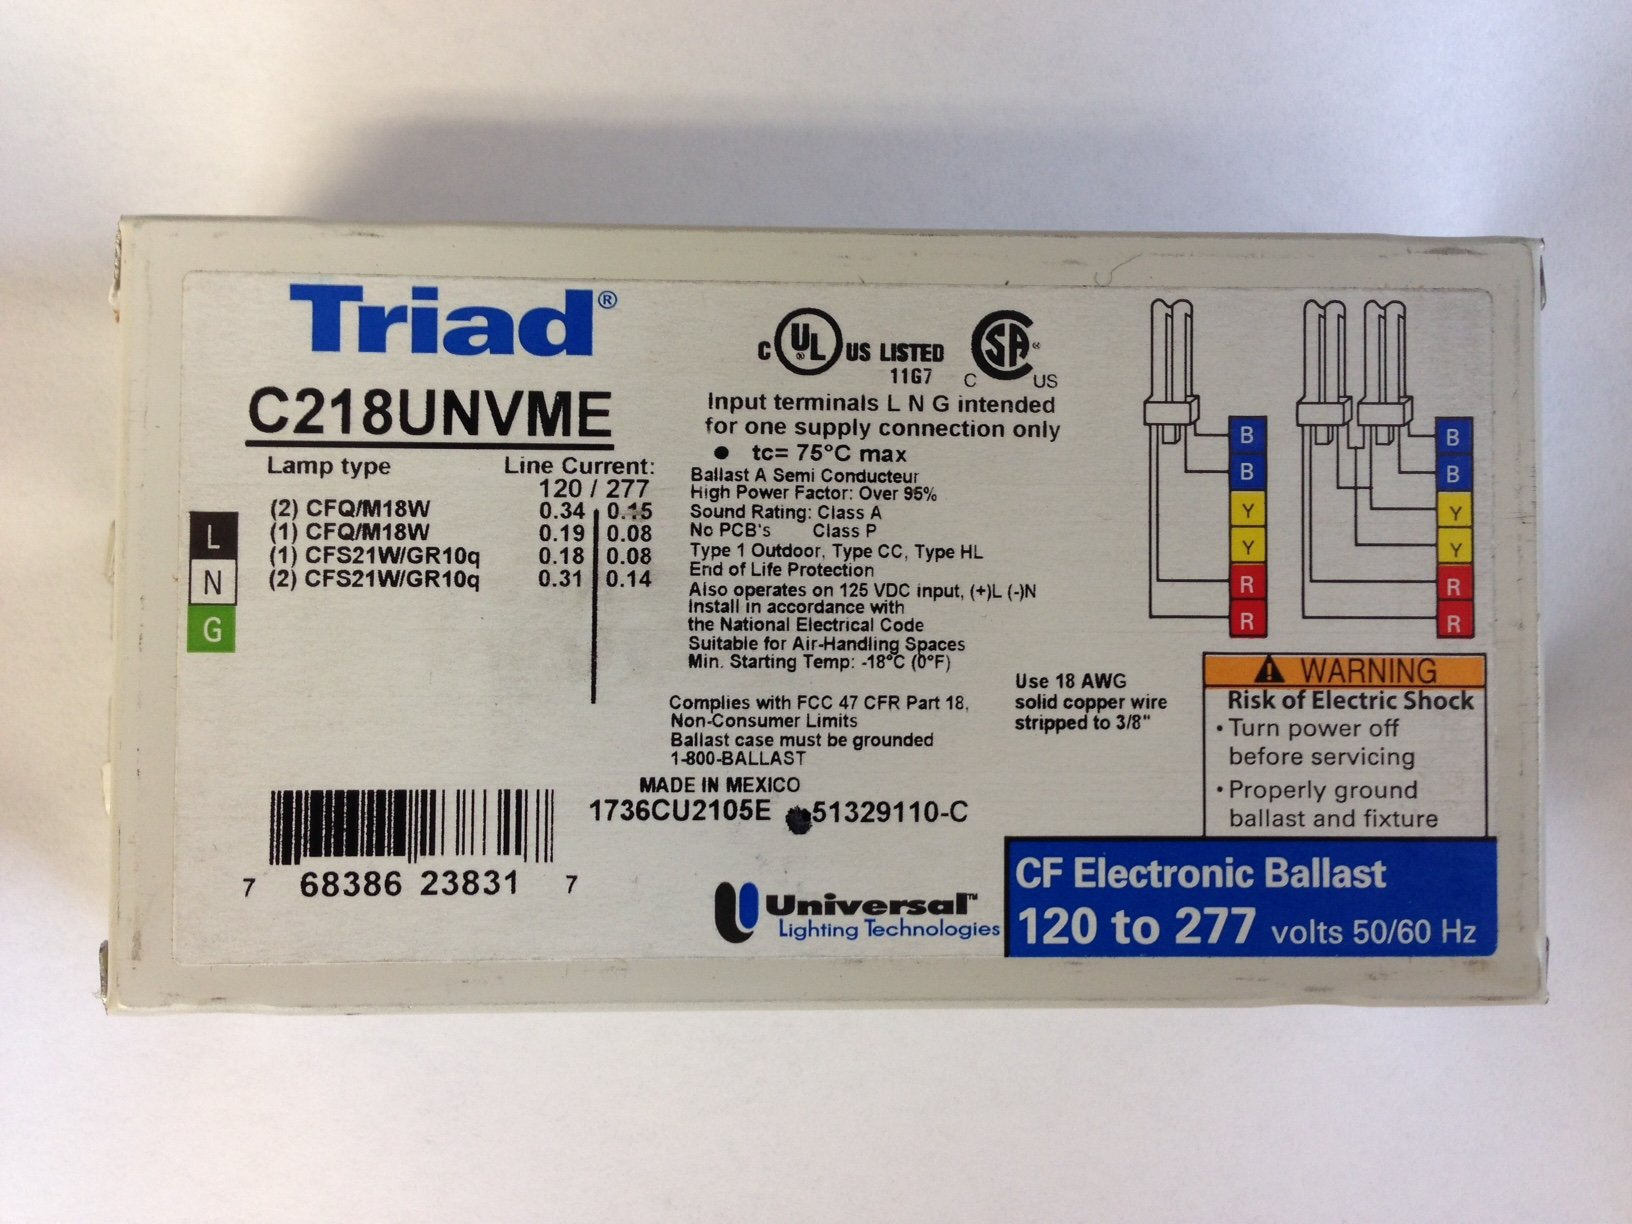 20 PIECES UNIVERSAL TRIAD C218UNVME 120-277V ELECTRONIC BALLAST FOR 2 CFQ/TR18W LAMP